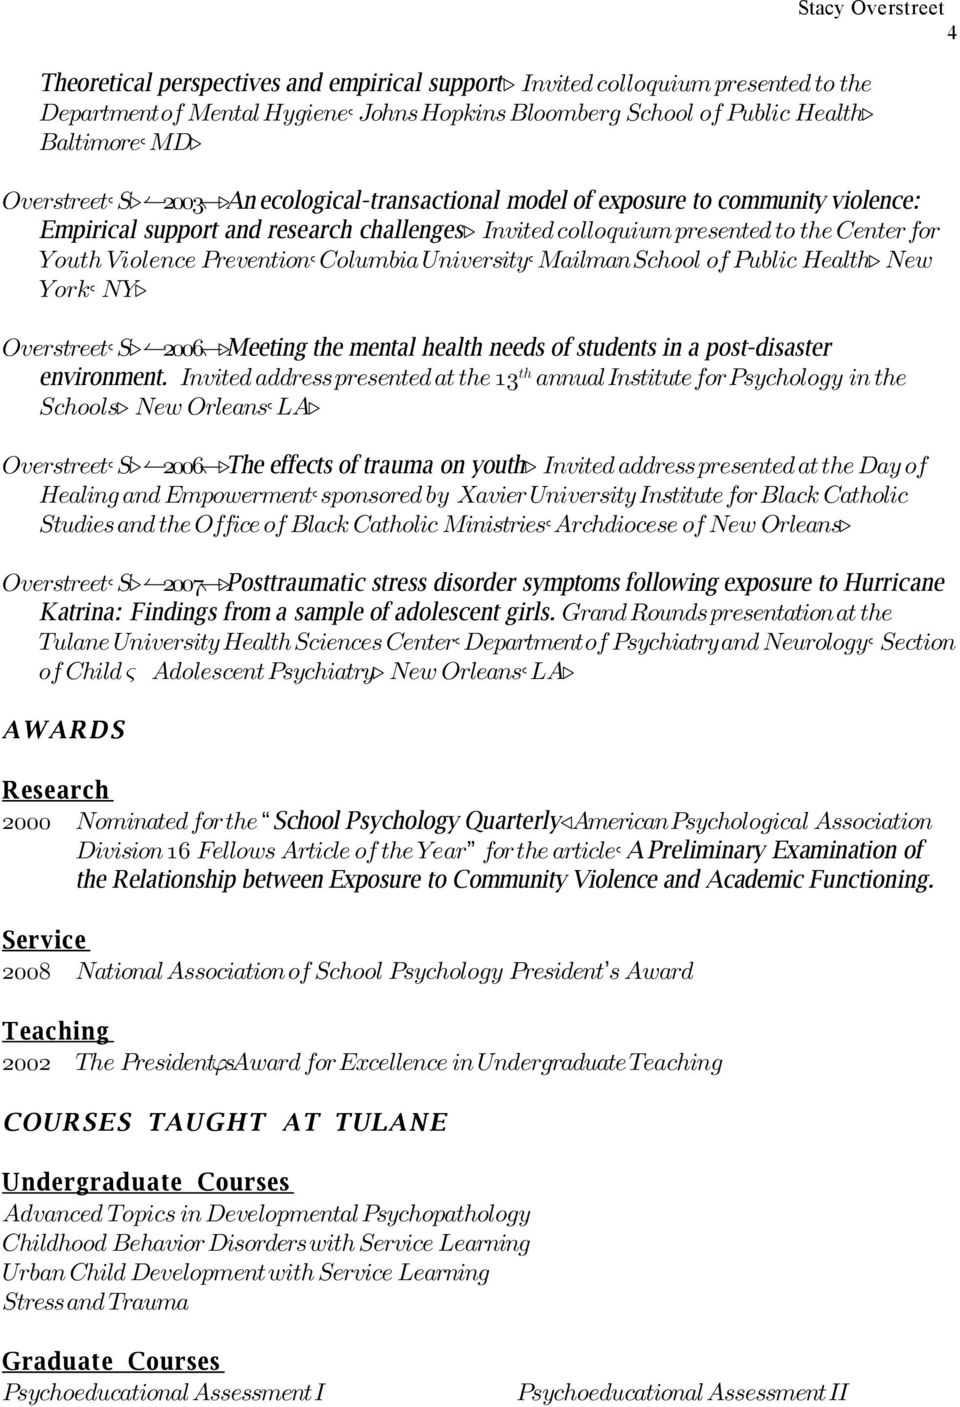 Invited colloquium presented to the Center for Youth Violence Prevention, Columbia University, Mailman School of Public Health. New York, NY. Overstreet, S. (2006).